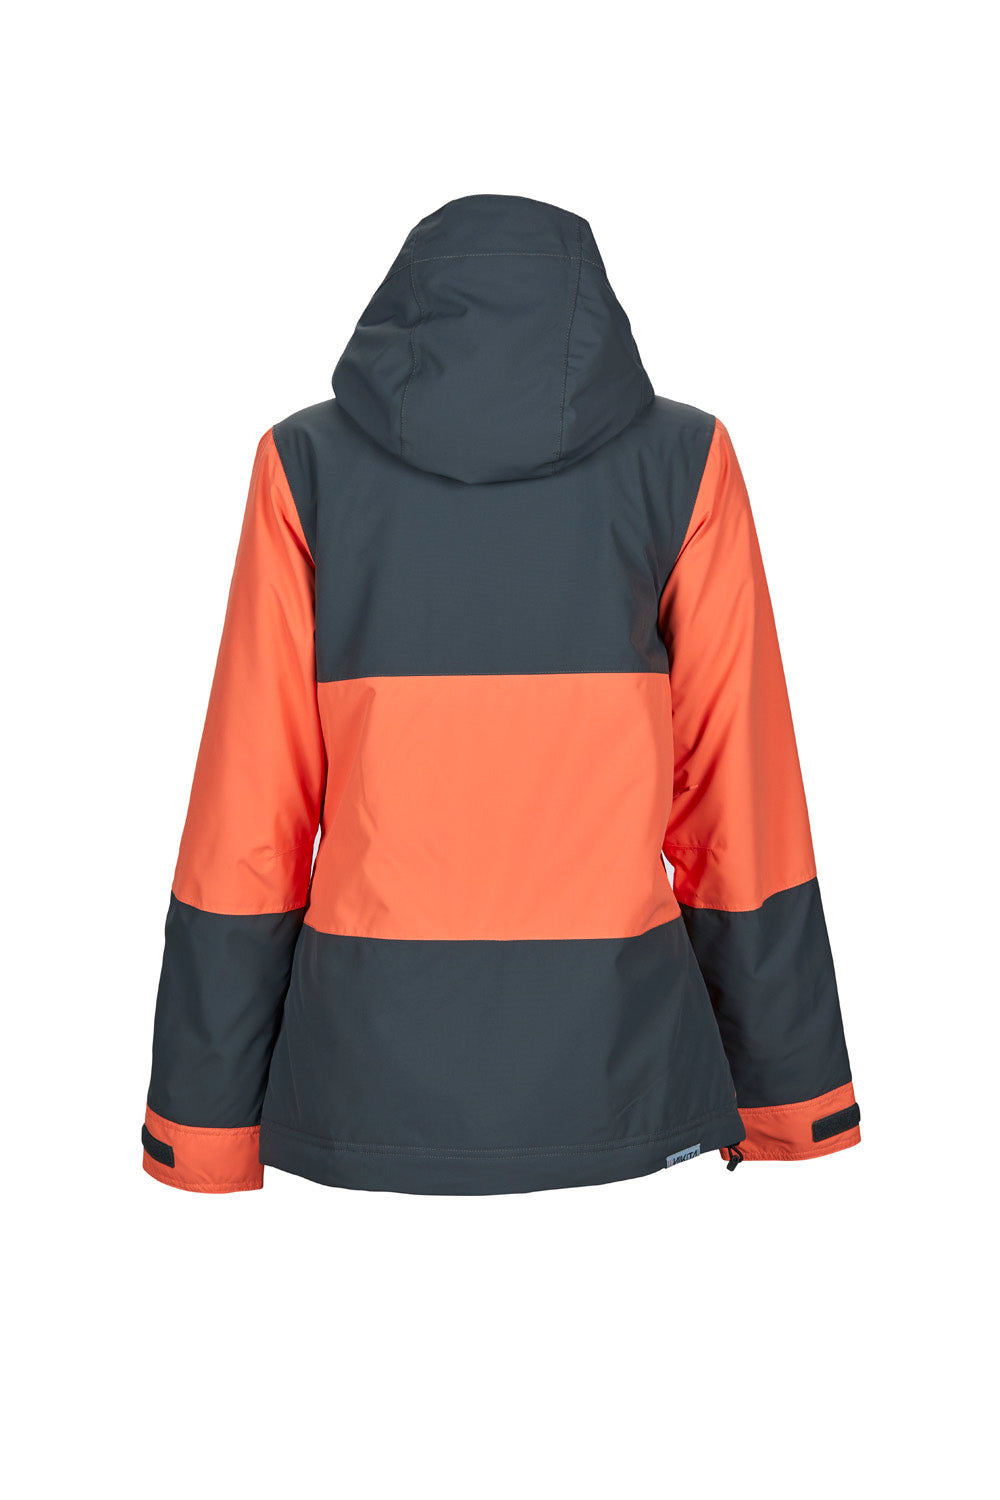 SEQUOIA JACKET INSULATED